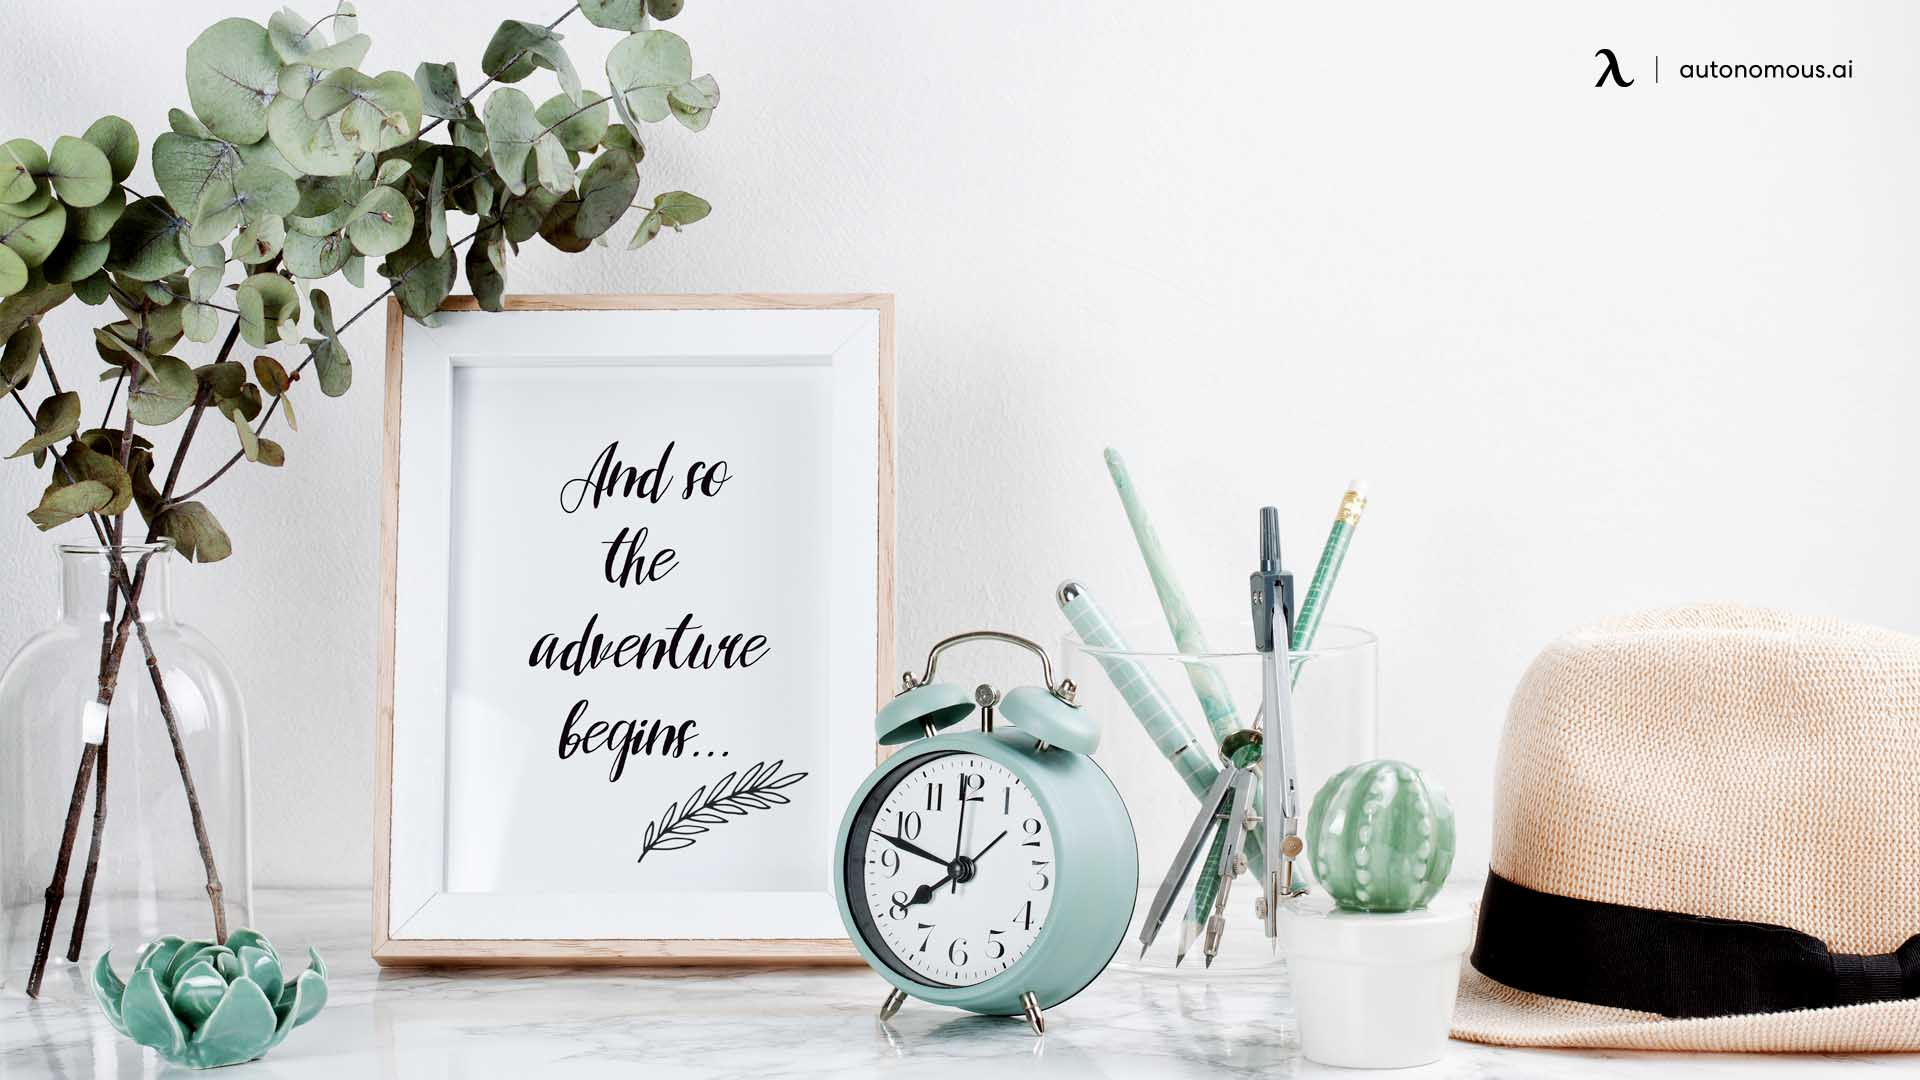 Use Pictures/Quotes to Inspire